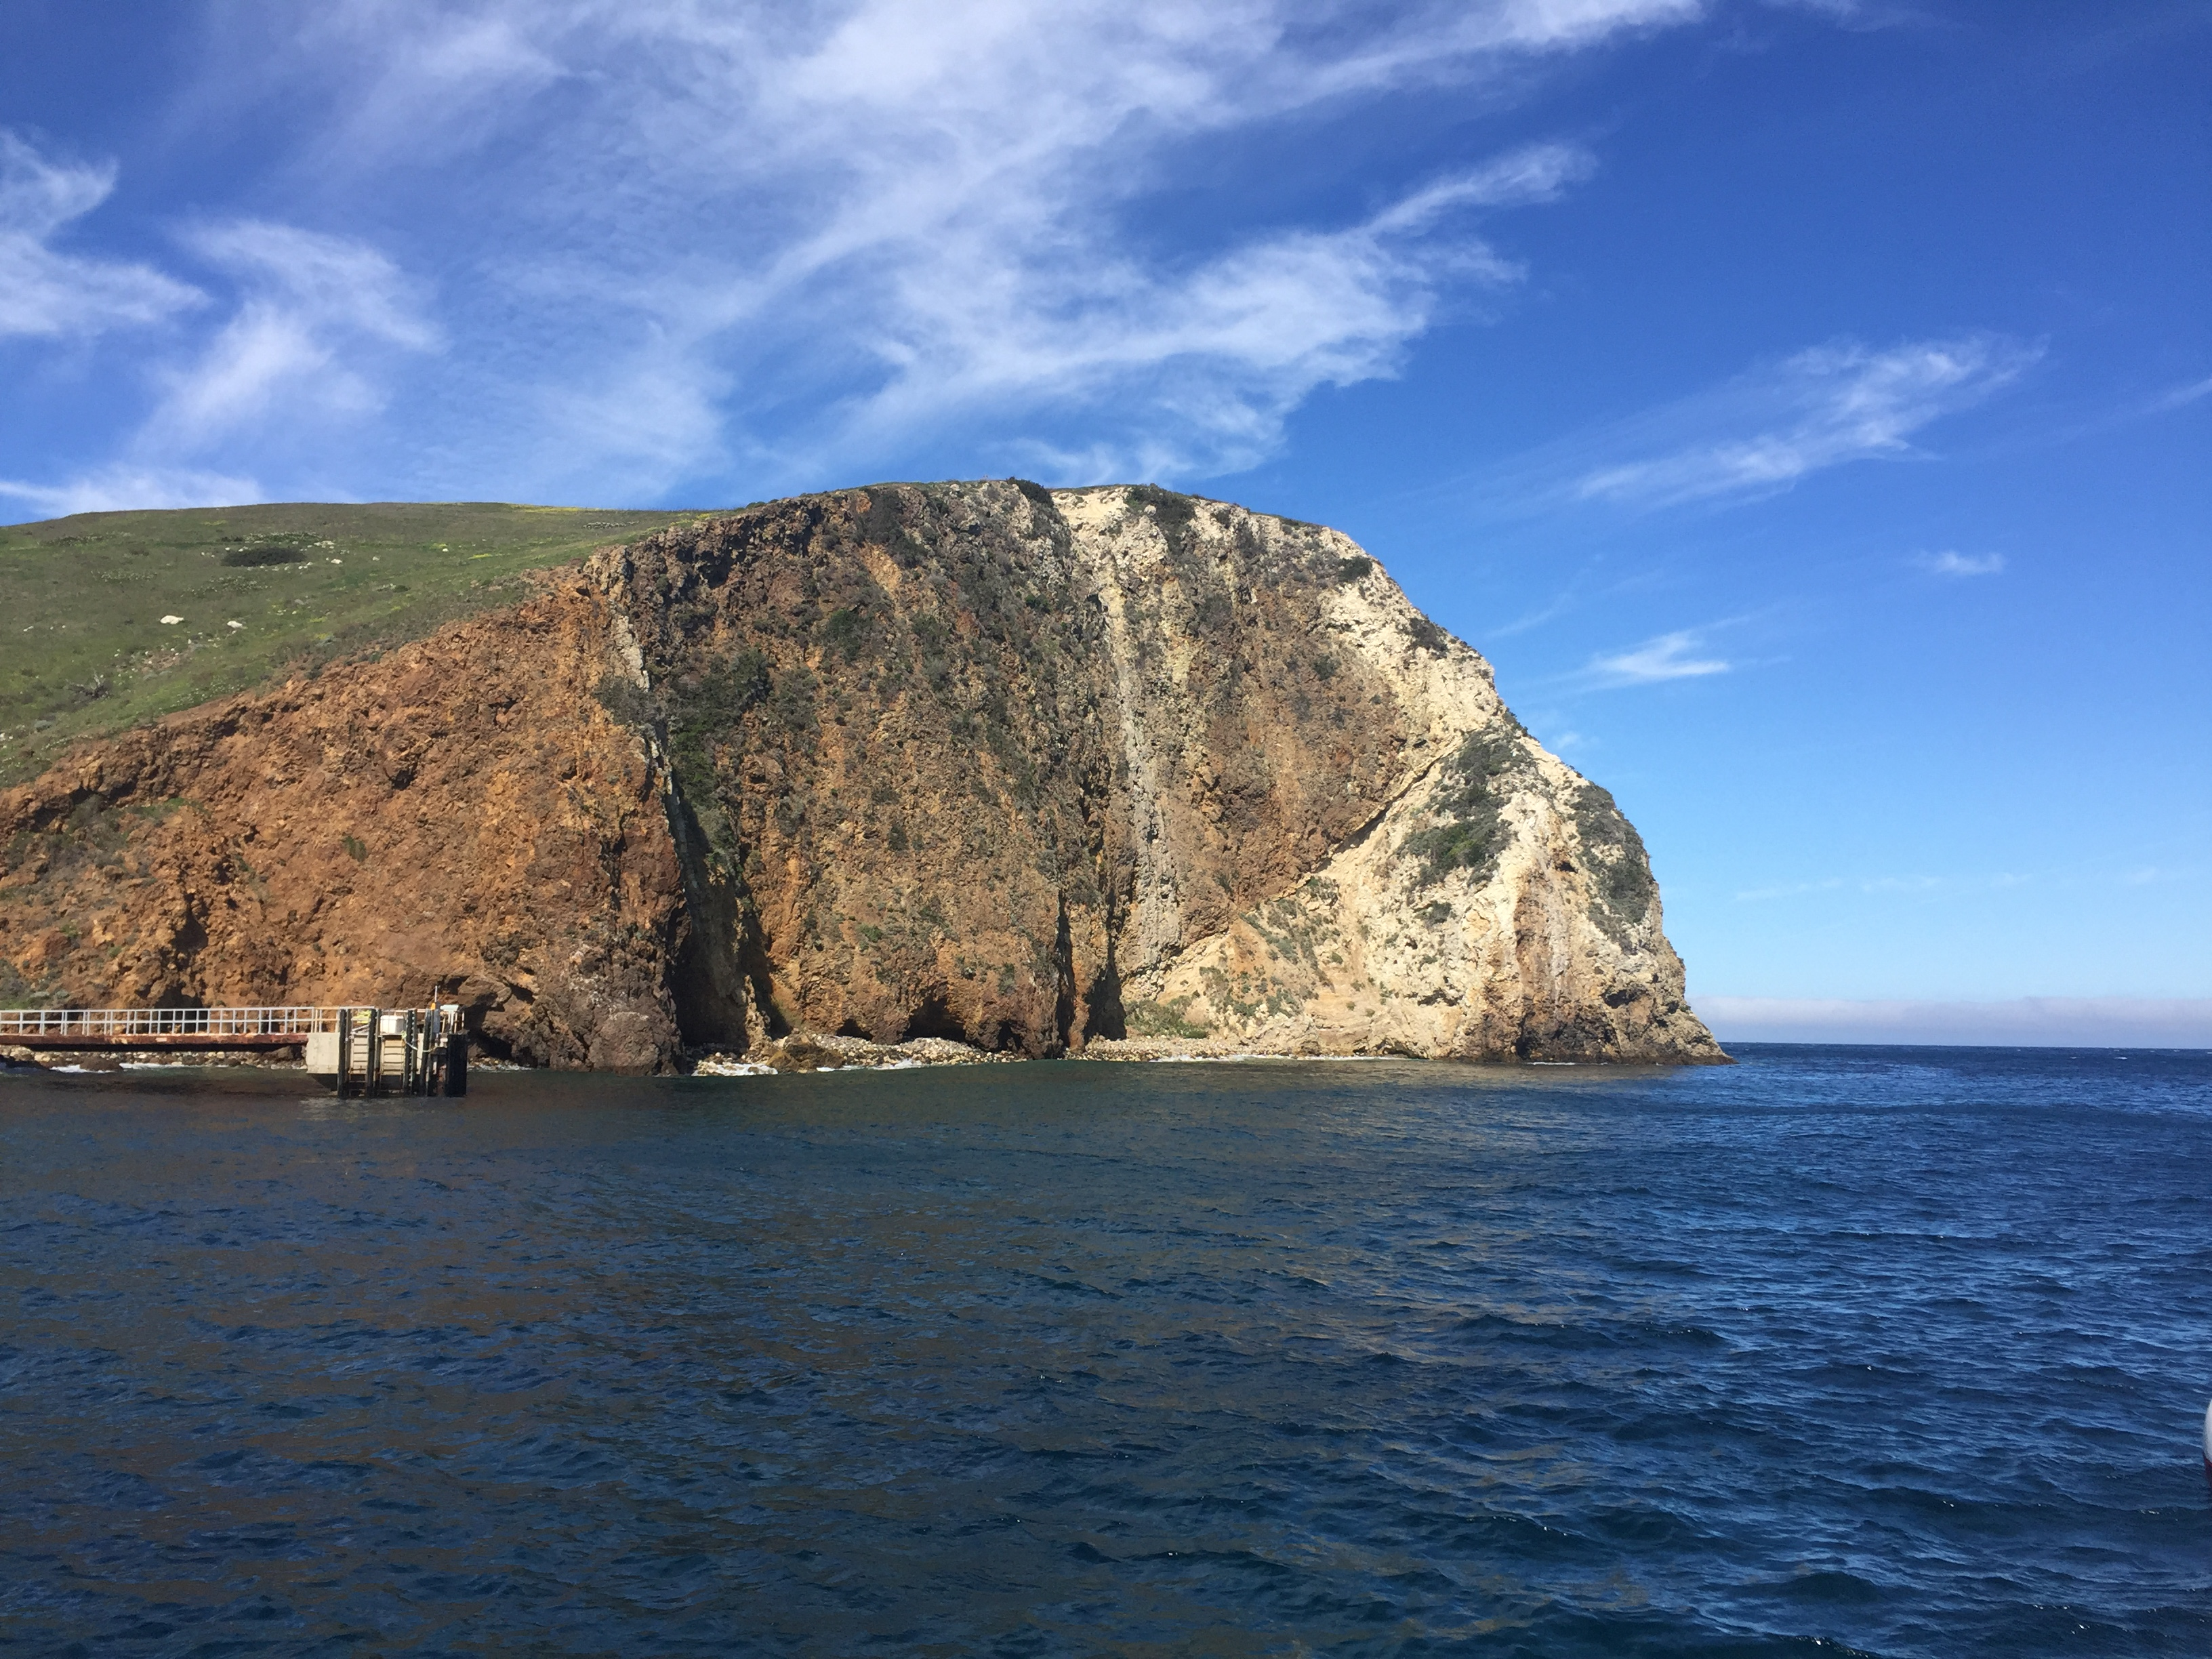 Channel Islands National Park: A Sanctuary for All